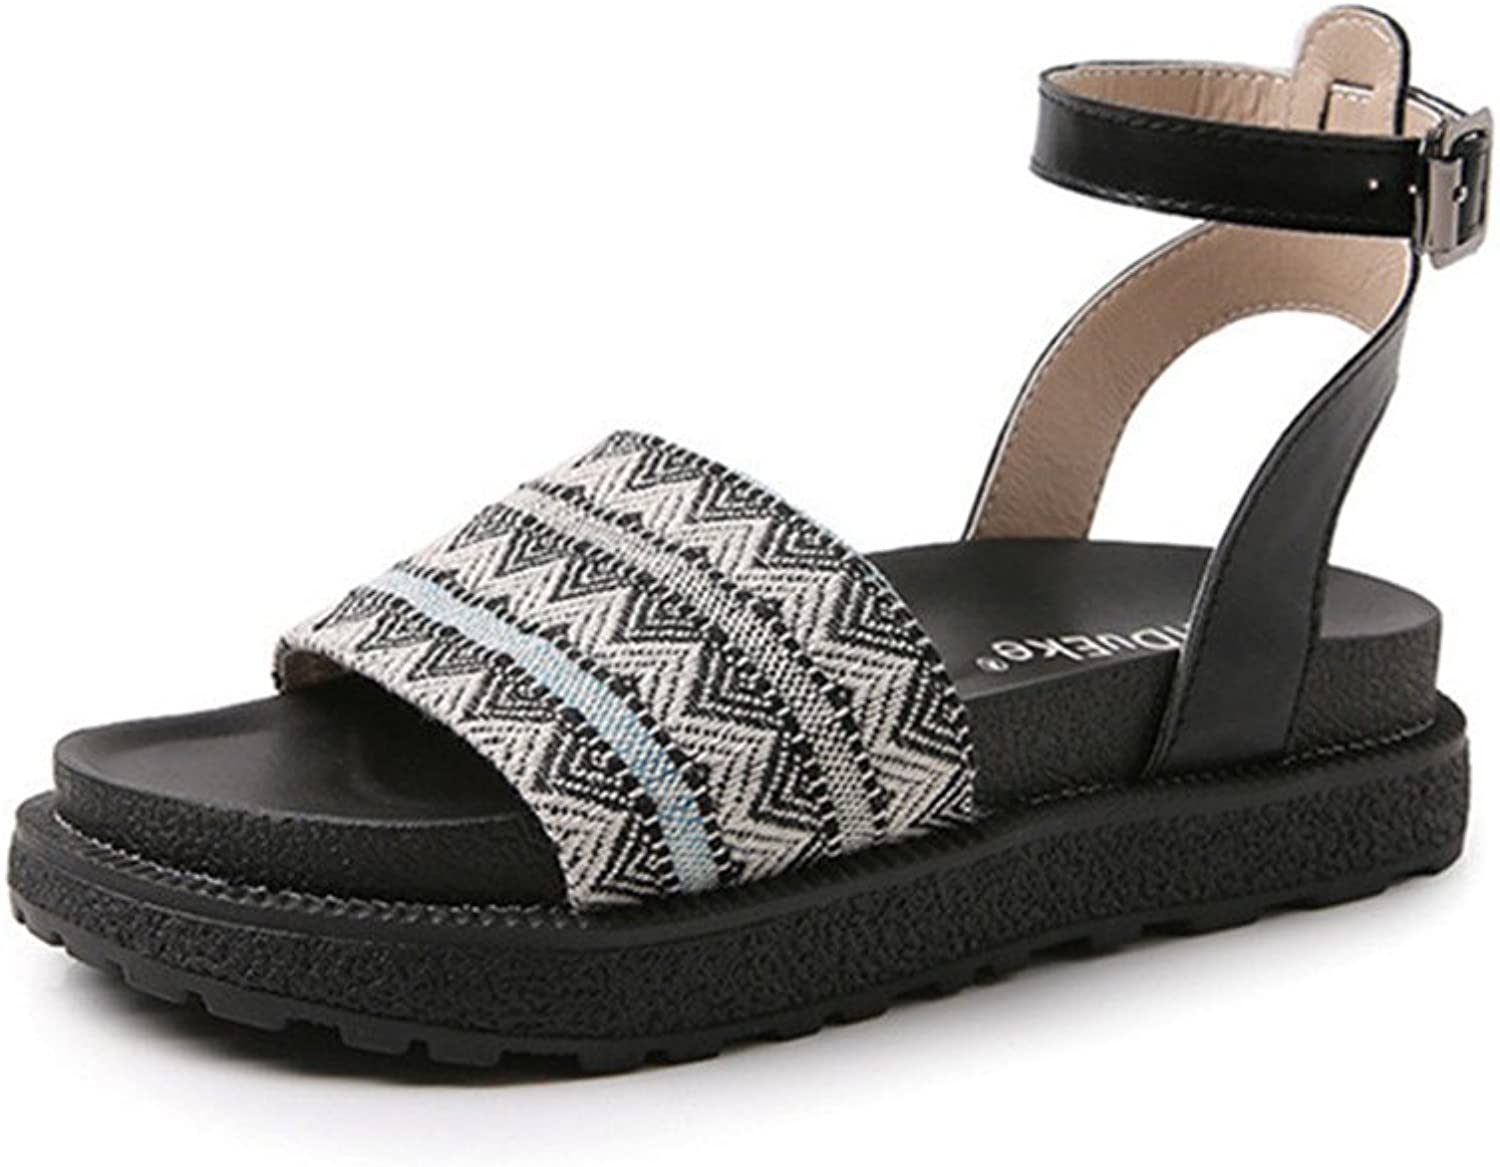 Gusha Casual Sandals Summer Women's Flat shoes Buckle Thick-Soled Platform shoes